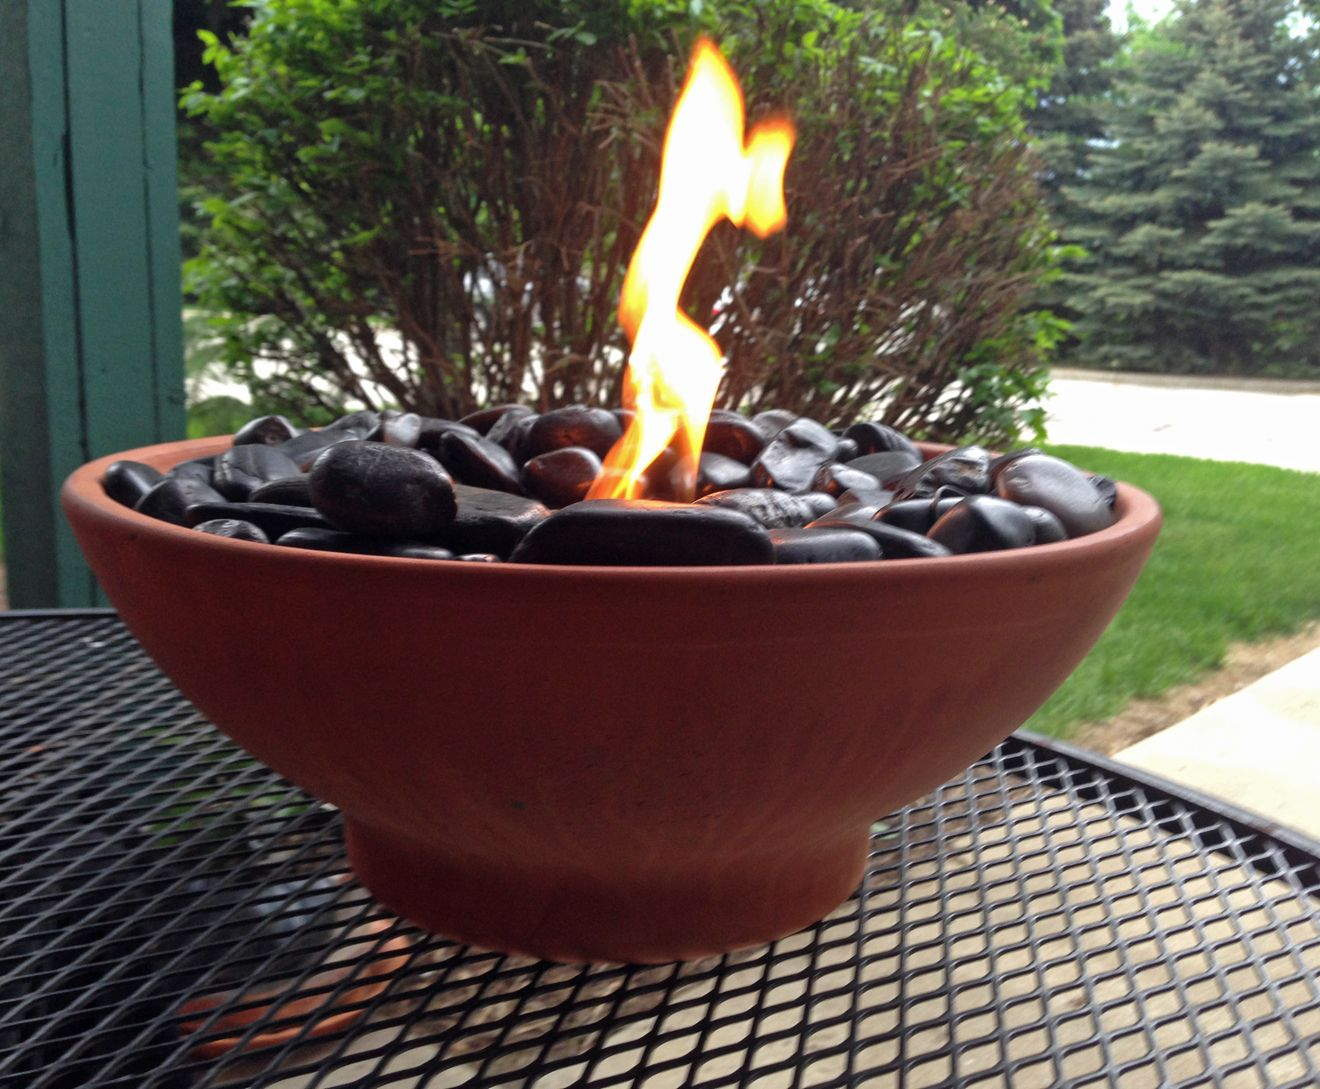 Diy Table Top Fire Pit Made With Black River Rocks And Real